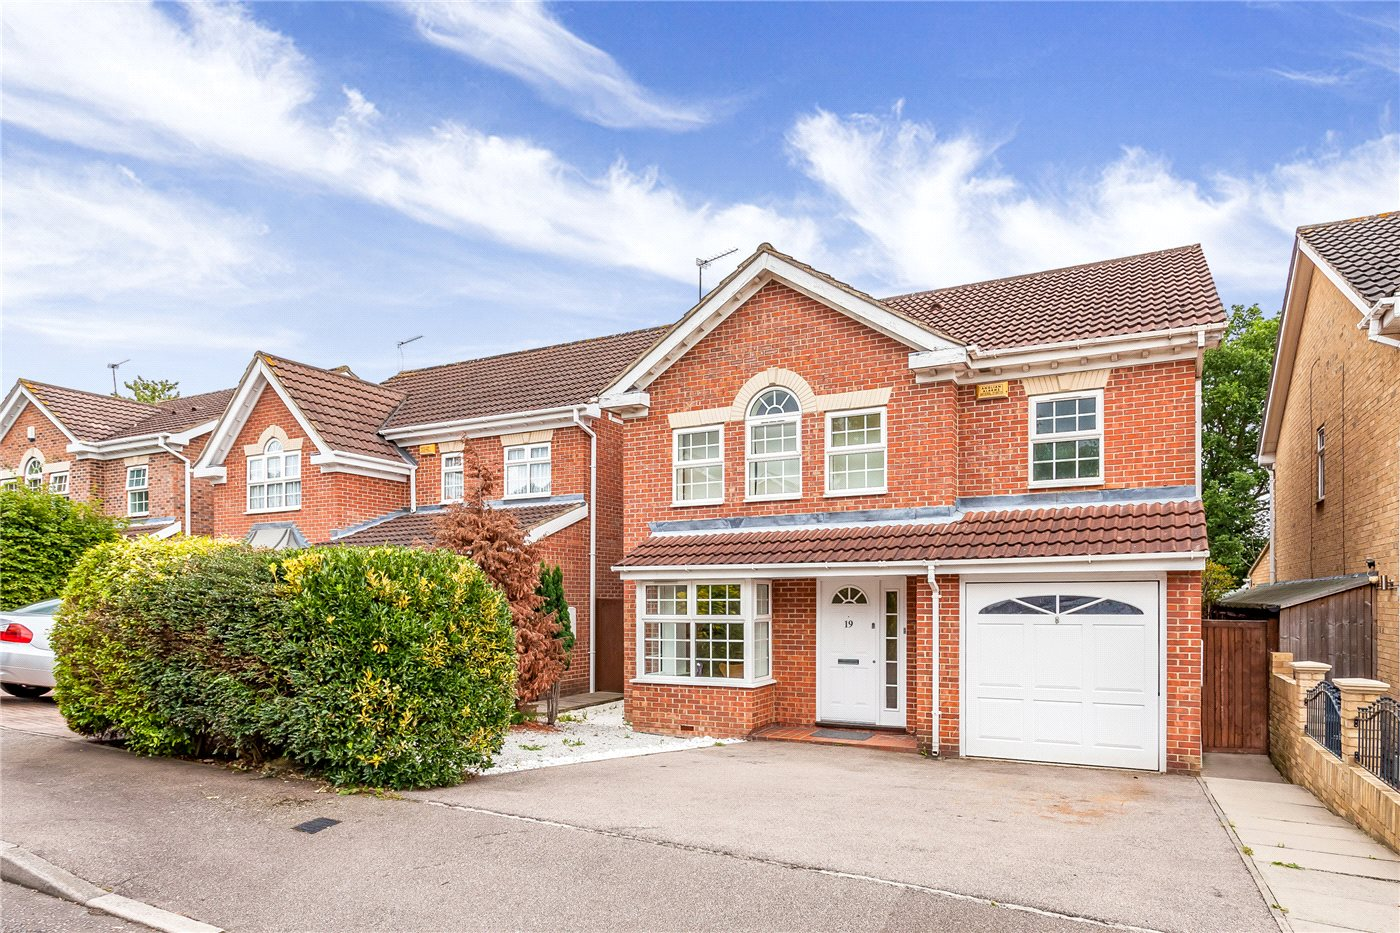 4 Bedrooms Detached House for sale in Thompsons Close, Cheshunt, Waltham Cross, Hertfordshire, EN7